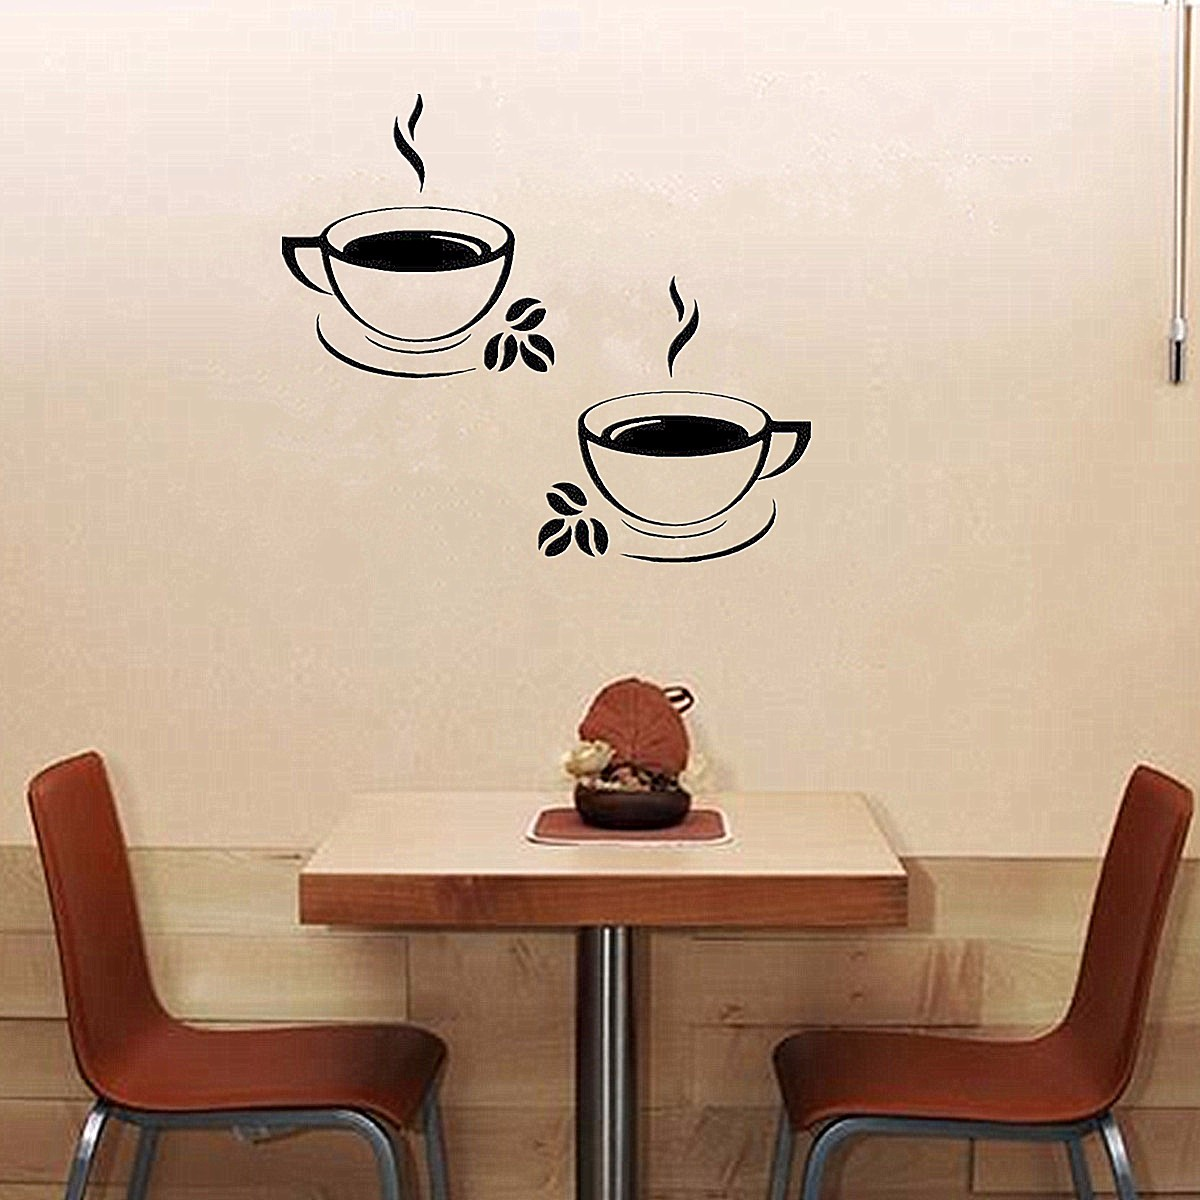 2Pcs Vinyl Home Room Decor Art Cafe coffeecupssticker Wall Decal Stickers Bedroom Removable Mural DIY Waterproof